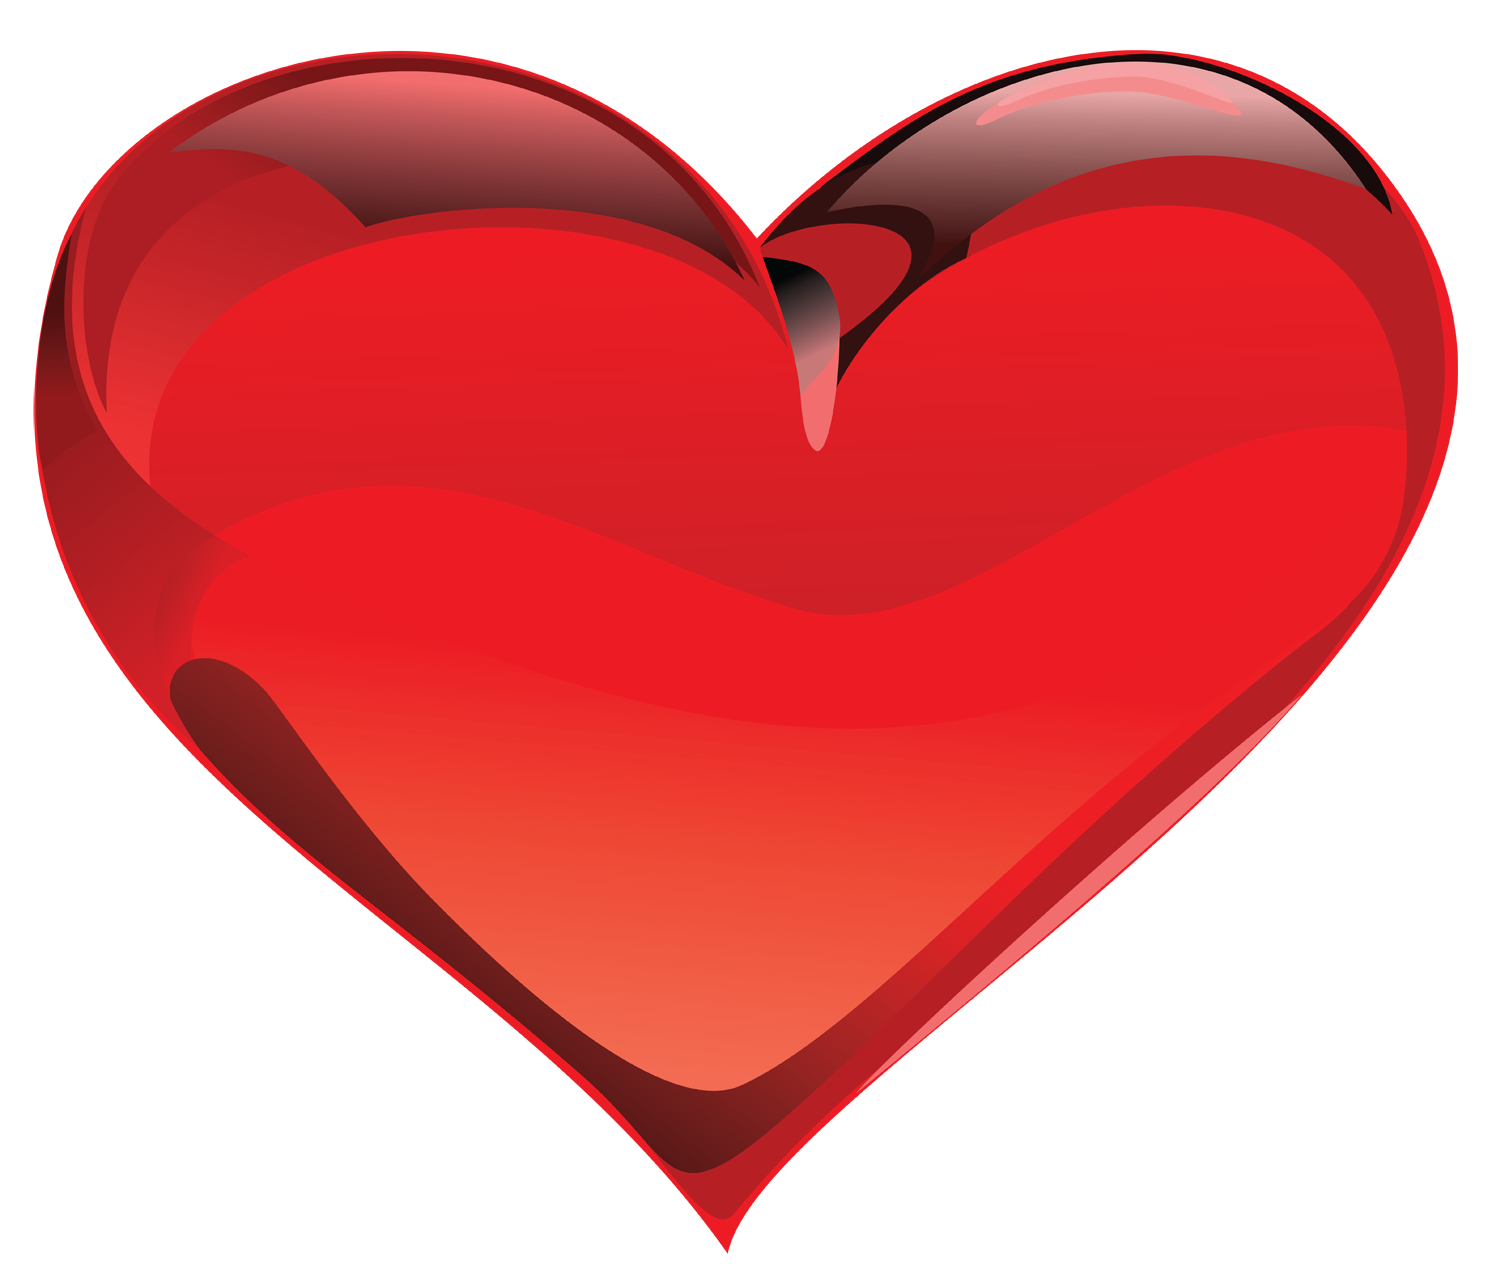 Hearts clipart png. Large red heart gallery